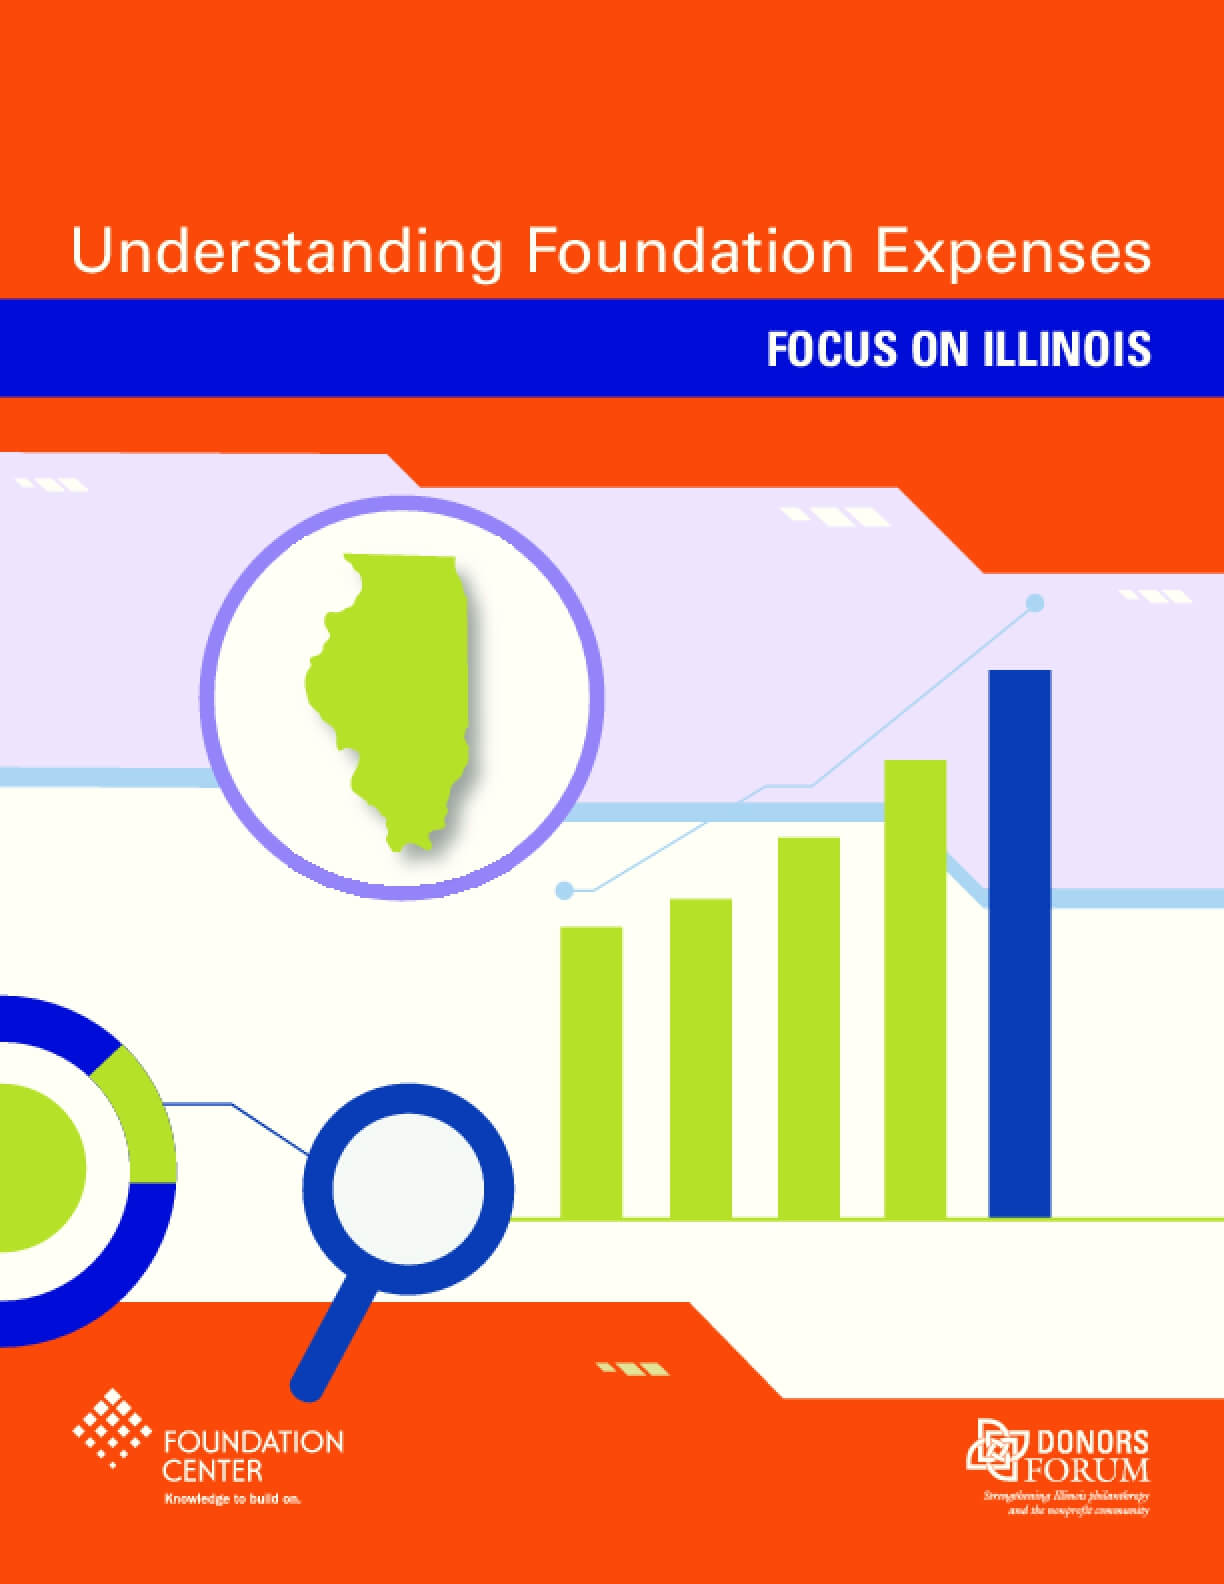 Understanding Foundation Expenses: Focus on Illinois